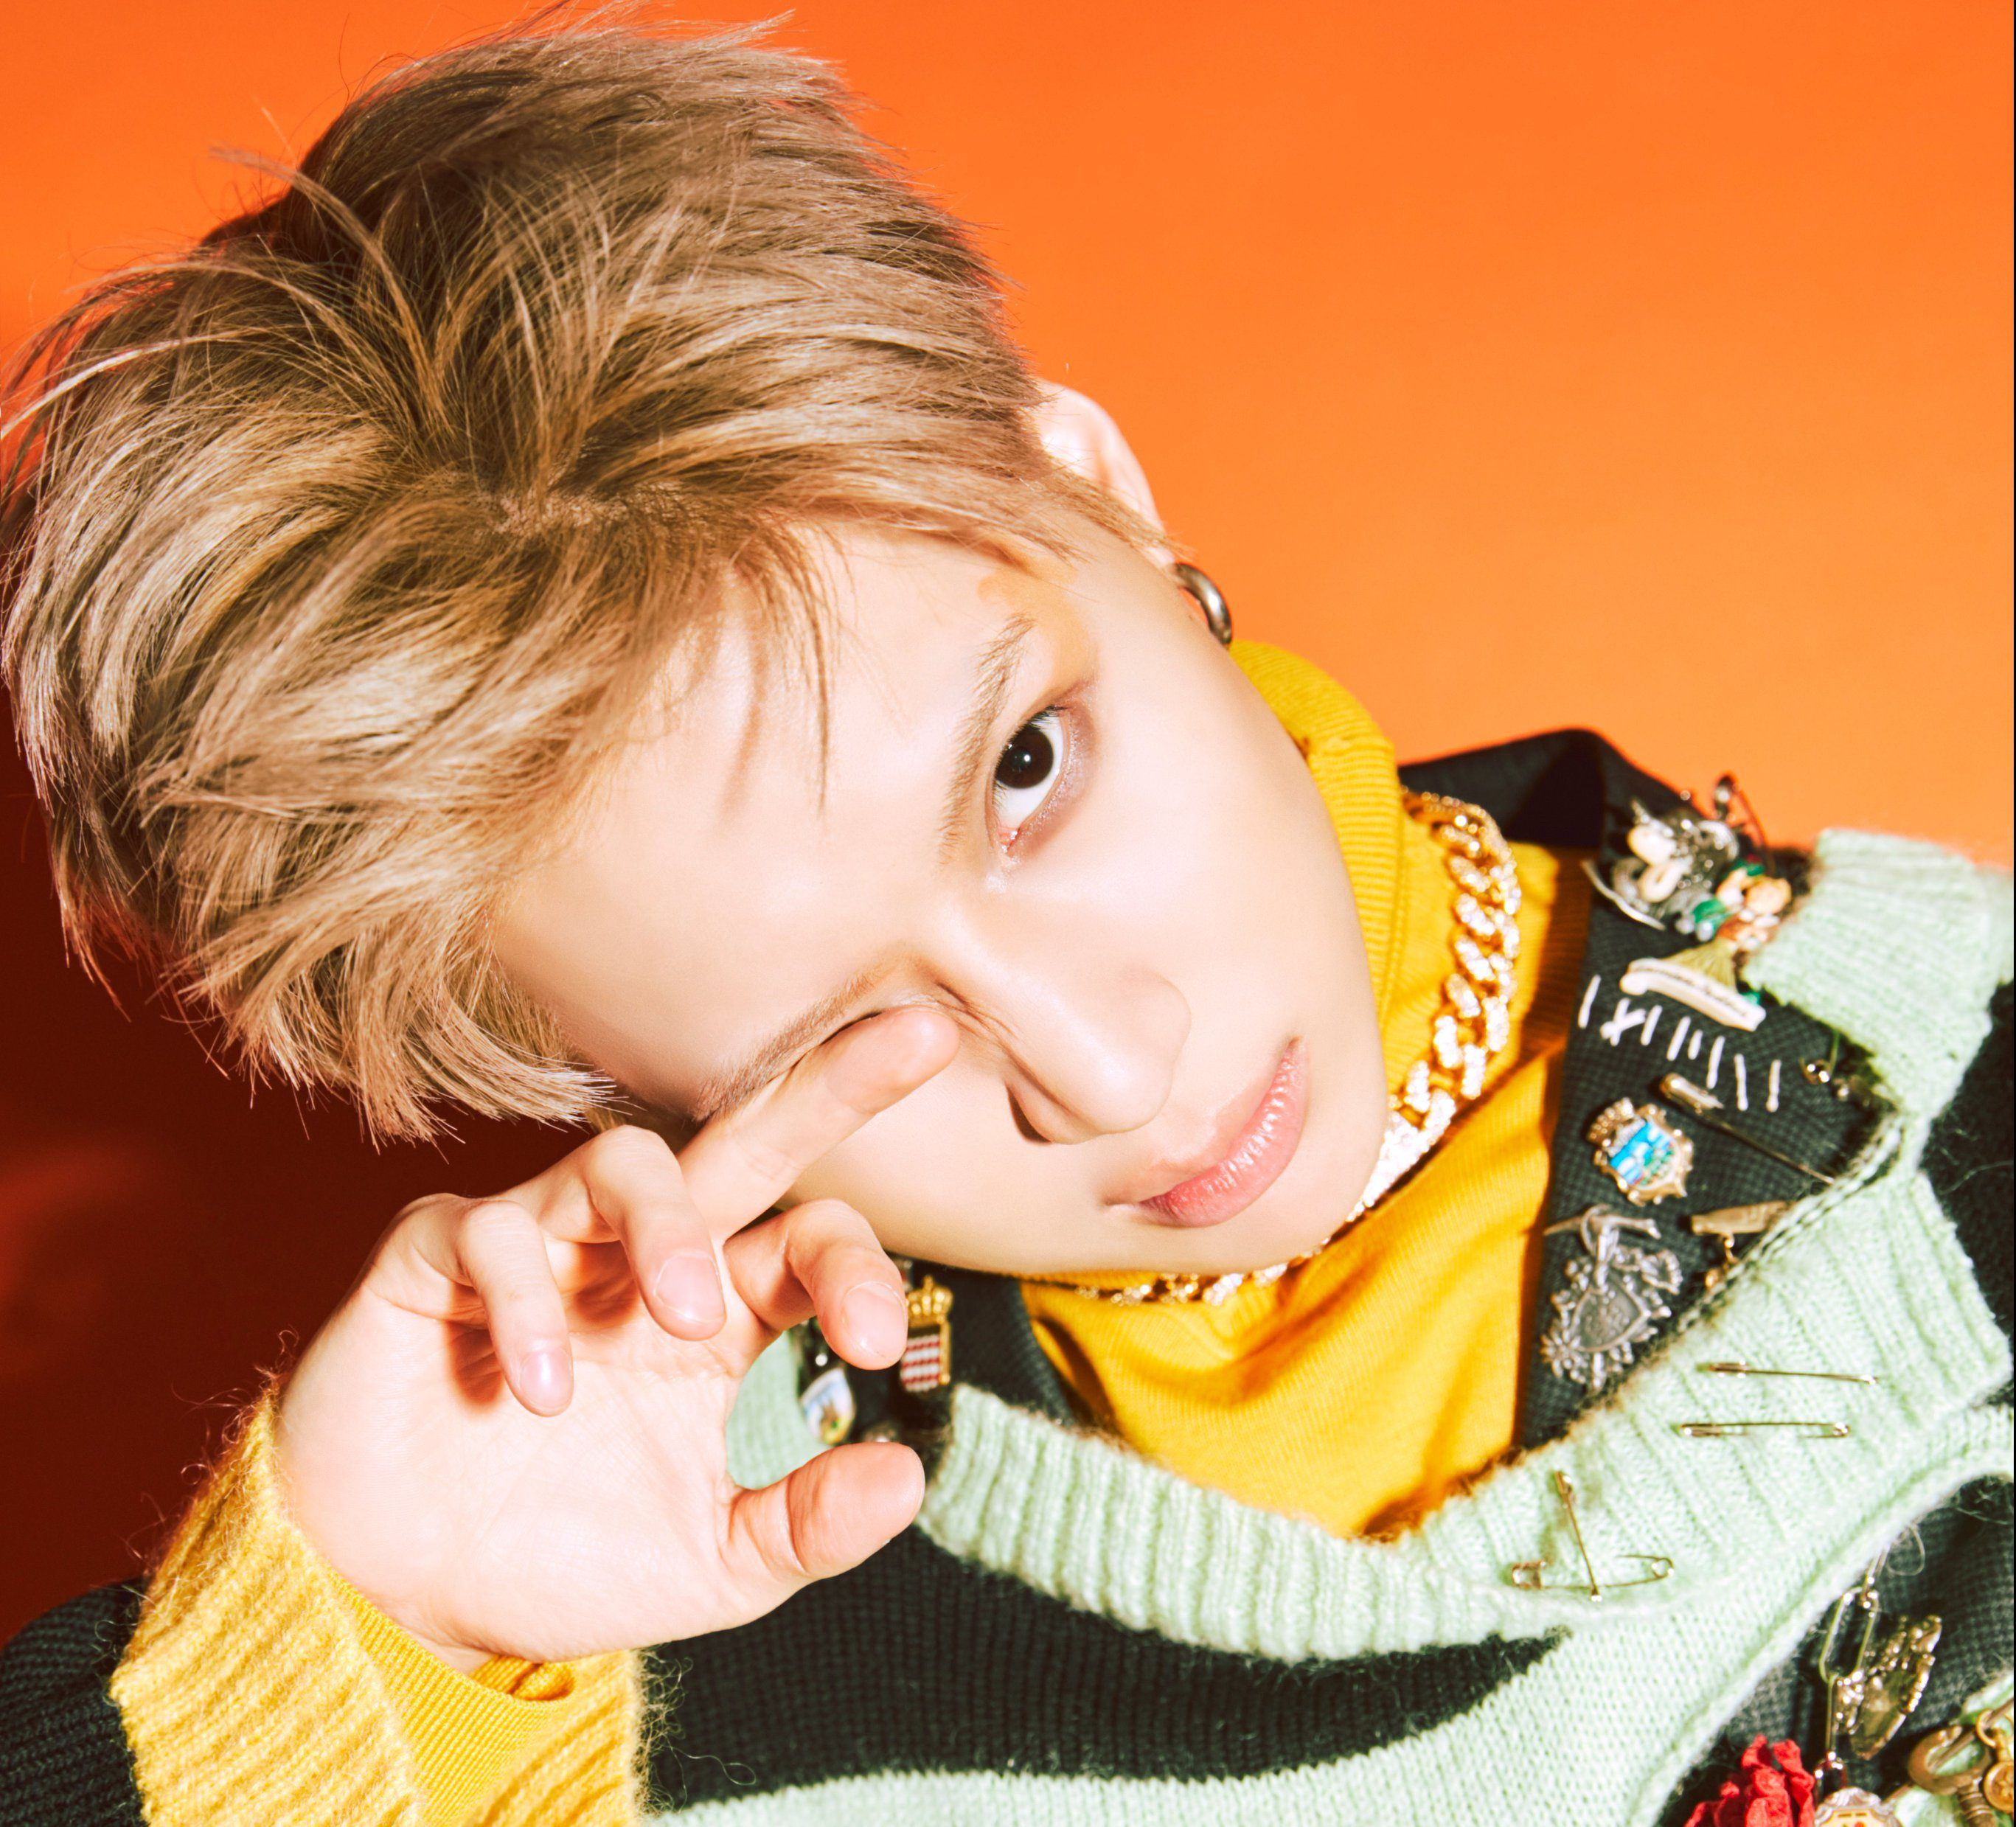 """Taemin Takes Over Hearts And Charts With His Thrilling Track """"2 Kids"""""""